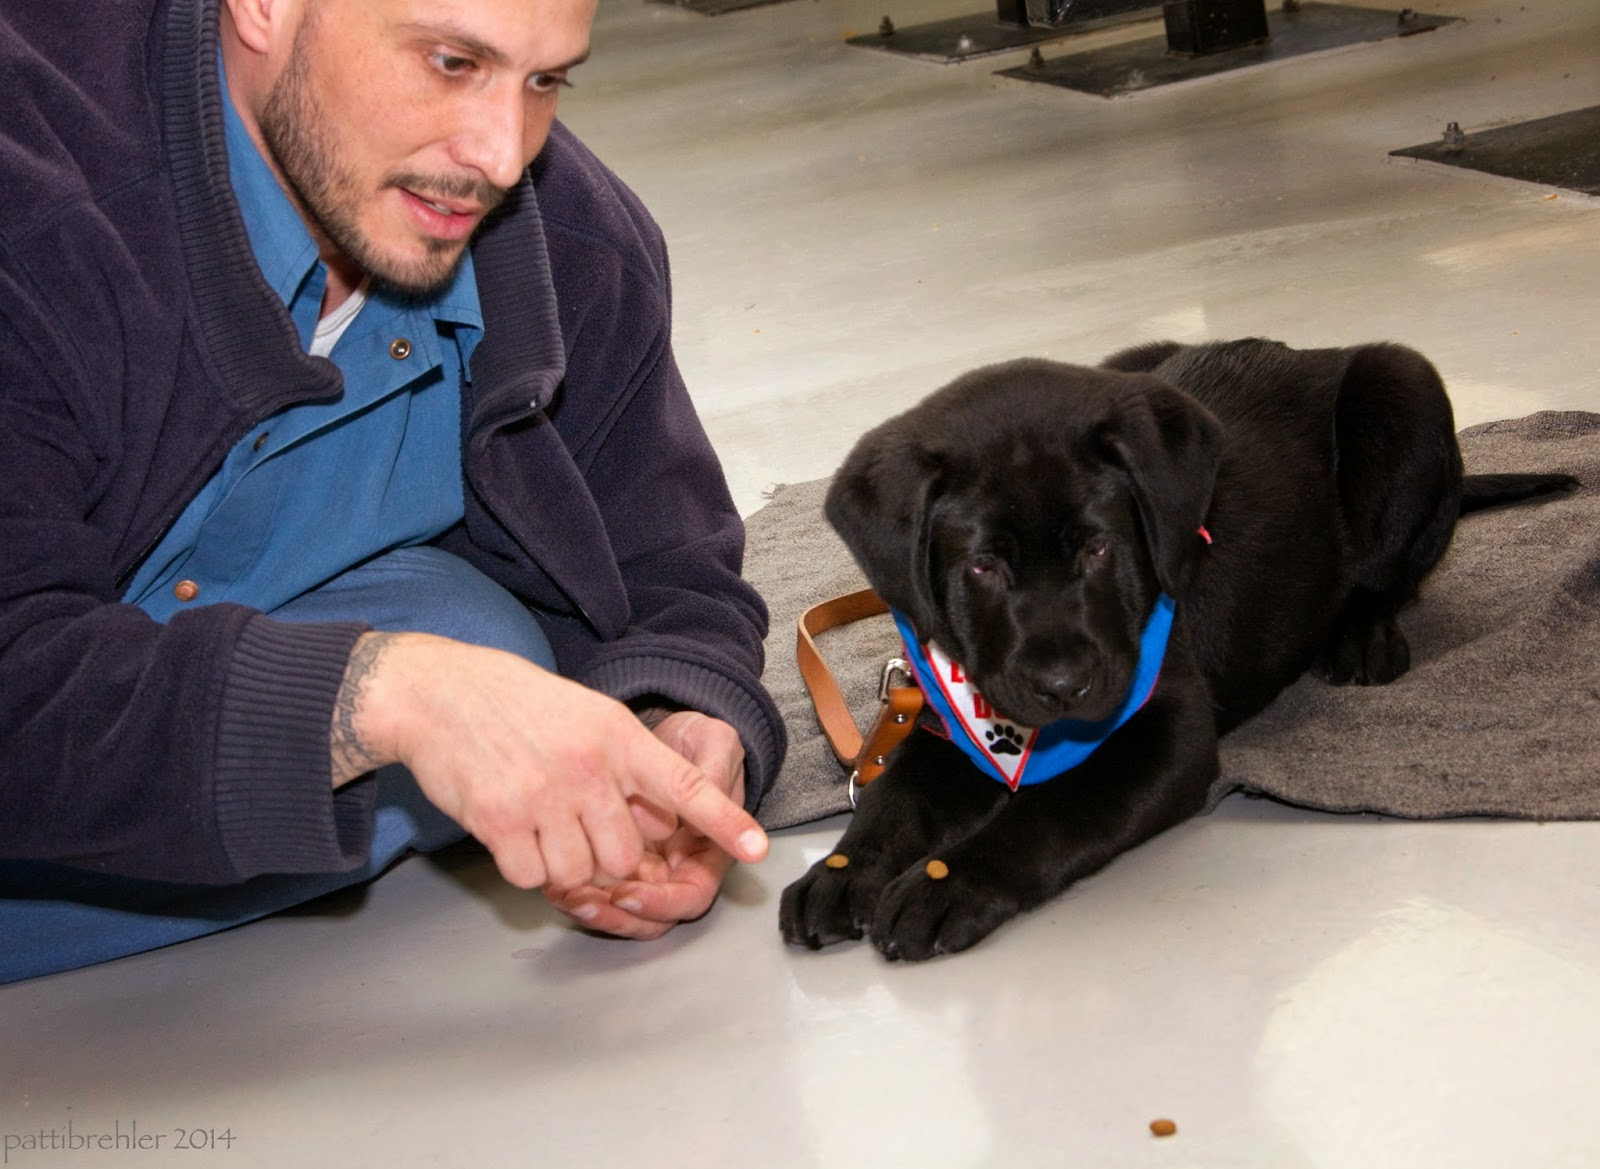 A man dressed in a royal blue shirt and a darker blue fleece jacket is sprawled out on a white tile floor on the left side of the picture. A young black lab puppy is lying next to him facing the camera. The puppy has a bit of kibble on each of his front paws which are stretched out in front of him. The puppy is on a grey mat. The man is pointing to the puppy's paws with his right hand. About a foot in front of hte puppy on the floor is another piece of kibble. The puppy is staring at the kibble on the floor, but not moving a muscle.